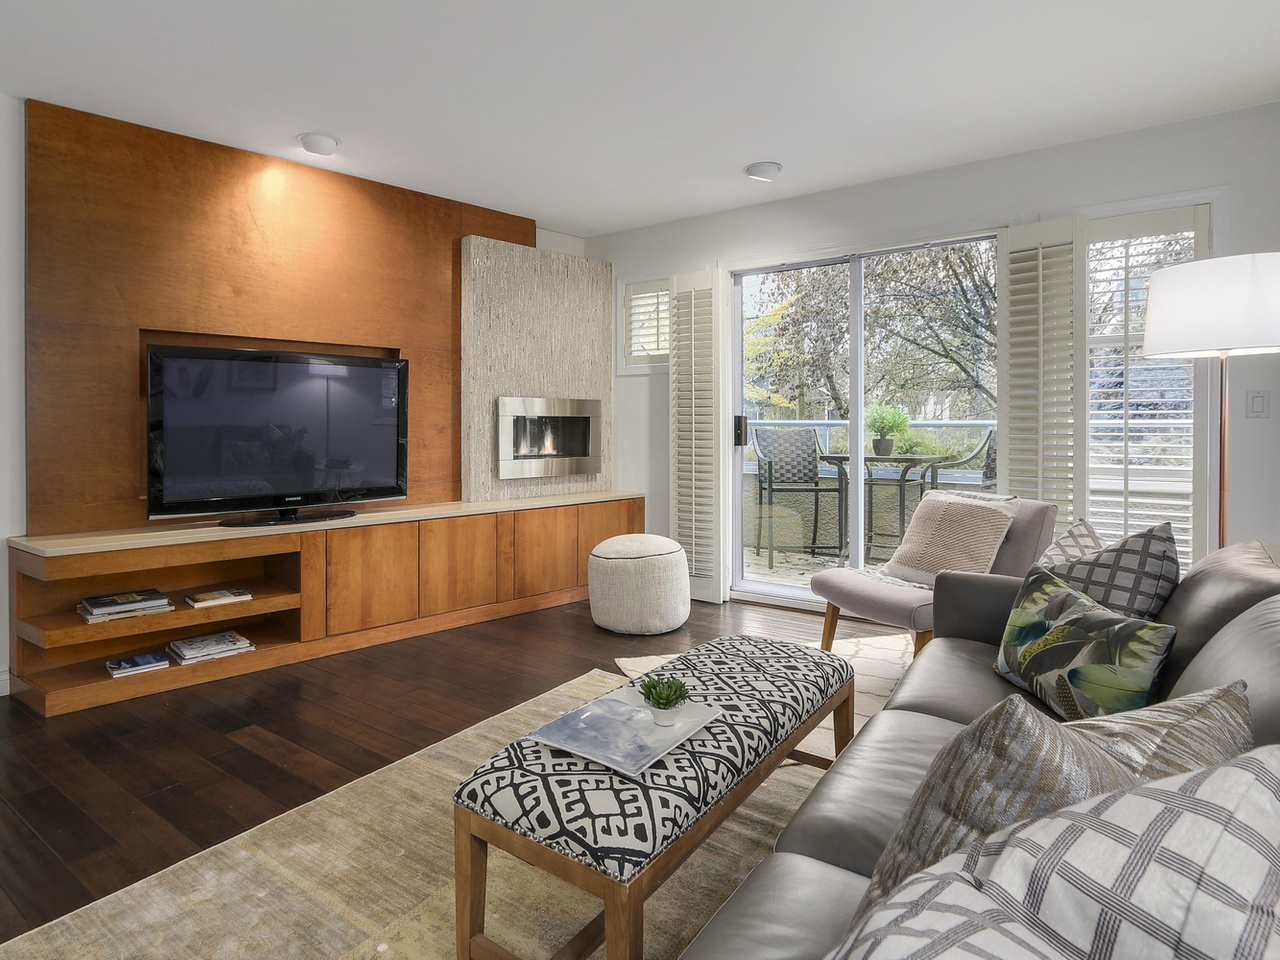 Photo 1: 2863 W 6TH AVENUE in Vancouver: Kitsilano House 1/2 Duplex for sale (Vancouver West)  : MLS(r) # R2138450